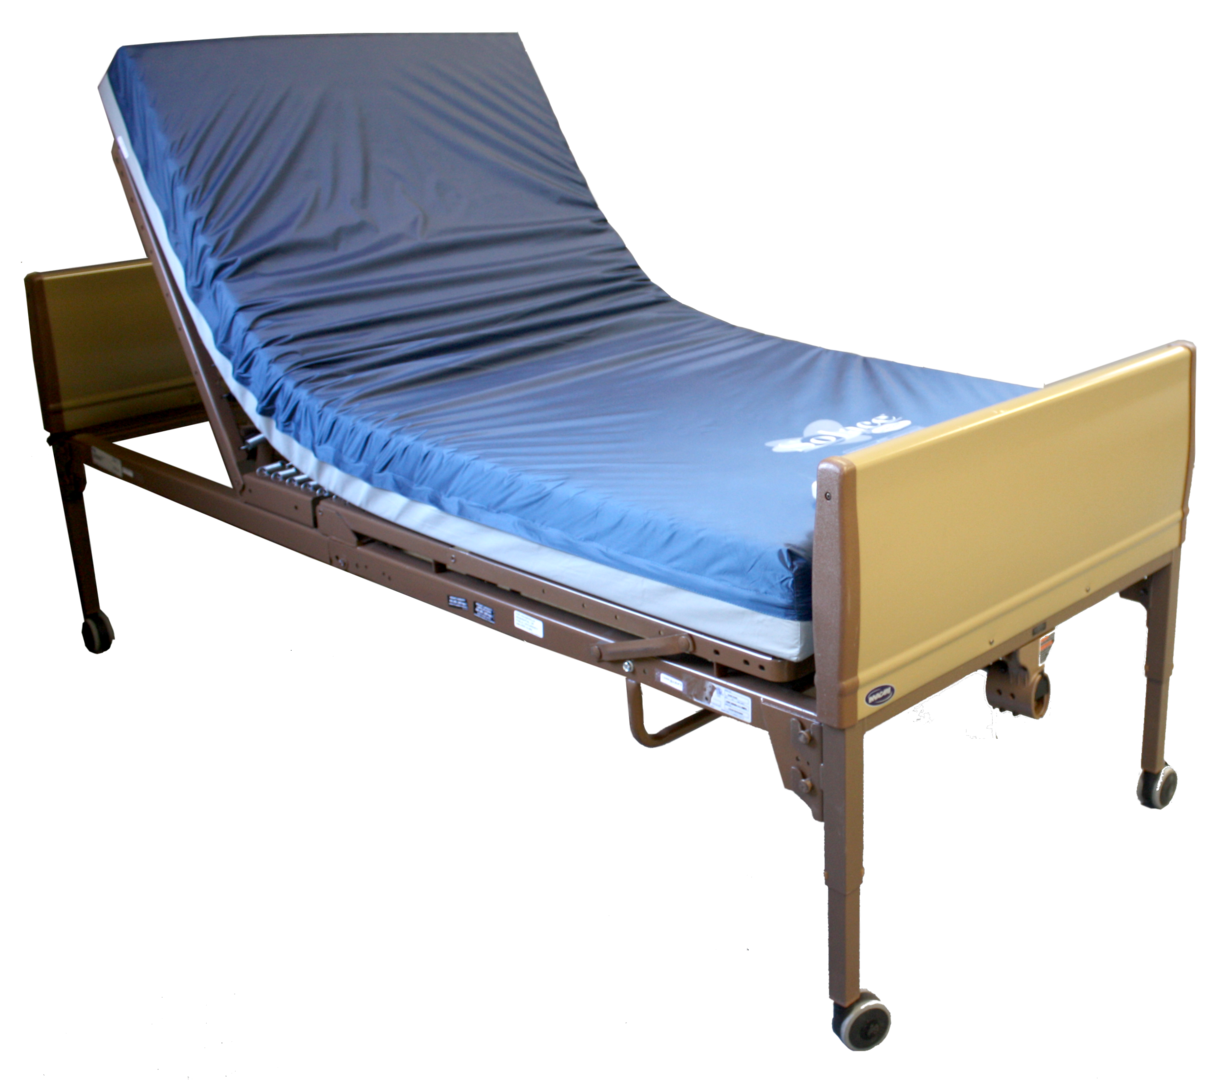 medsurg bed does pads meditek siderail hospital a much cost how case of accessories for beds eleganza rent